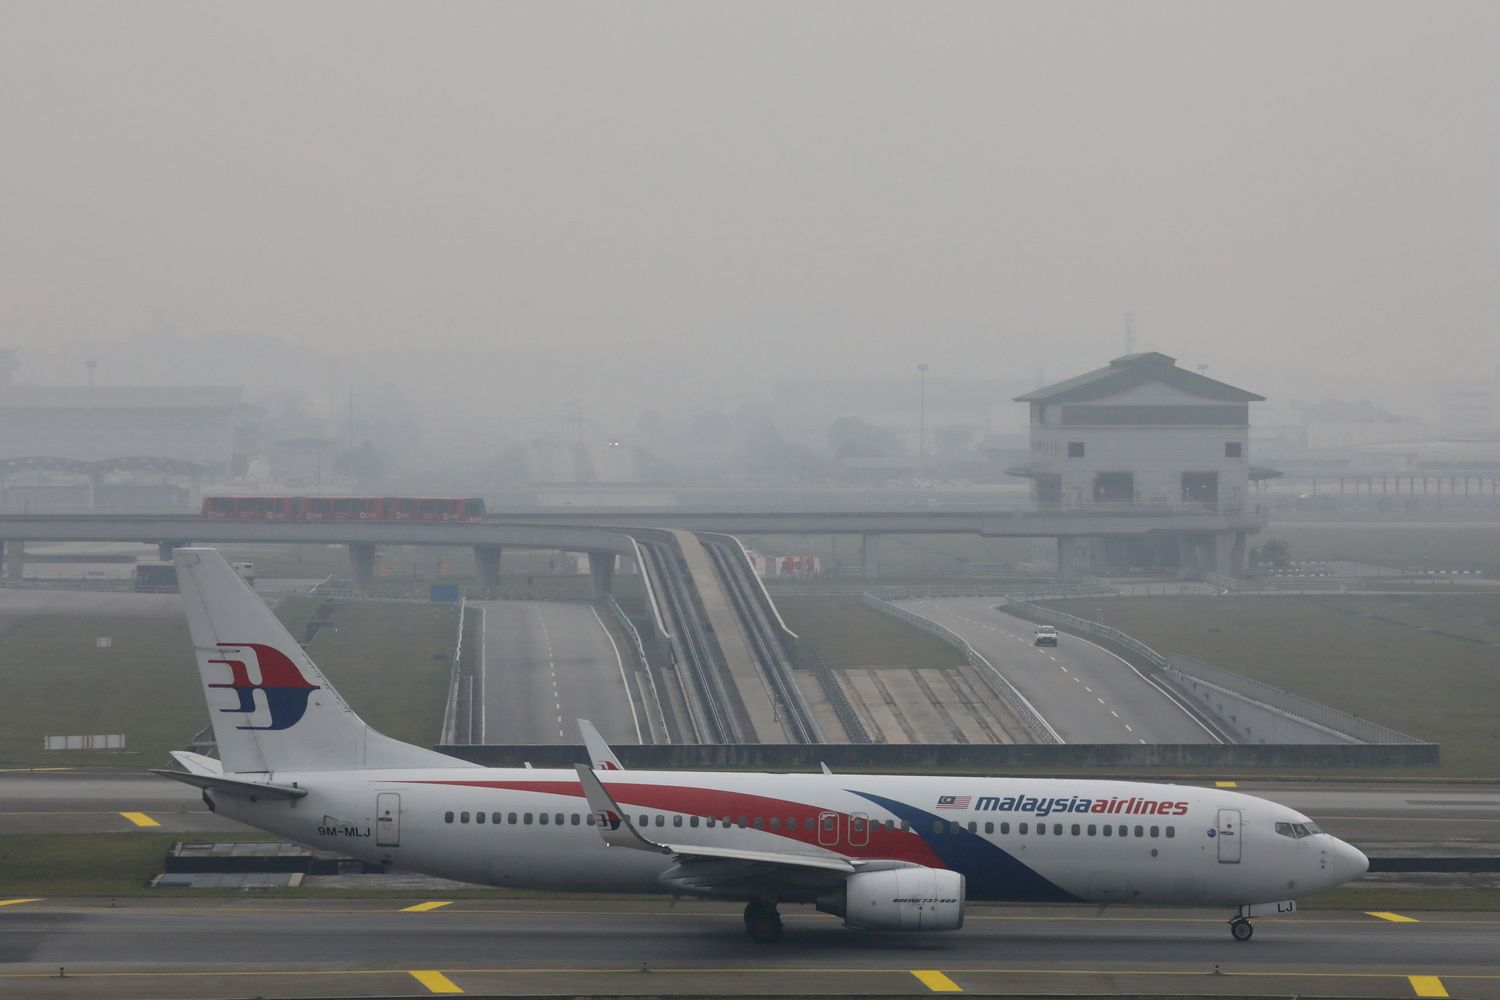 A Malaysia Airlines Boeing 737-800 aeroplane is pictured on the haze-shrouded tarmac at Kuala Lumpur International Airport in Sepang, Malaysia, in 2019. (Reuters photo)